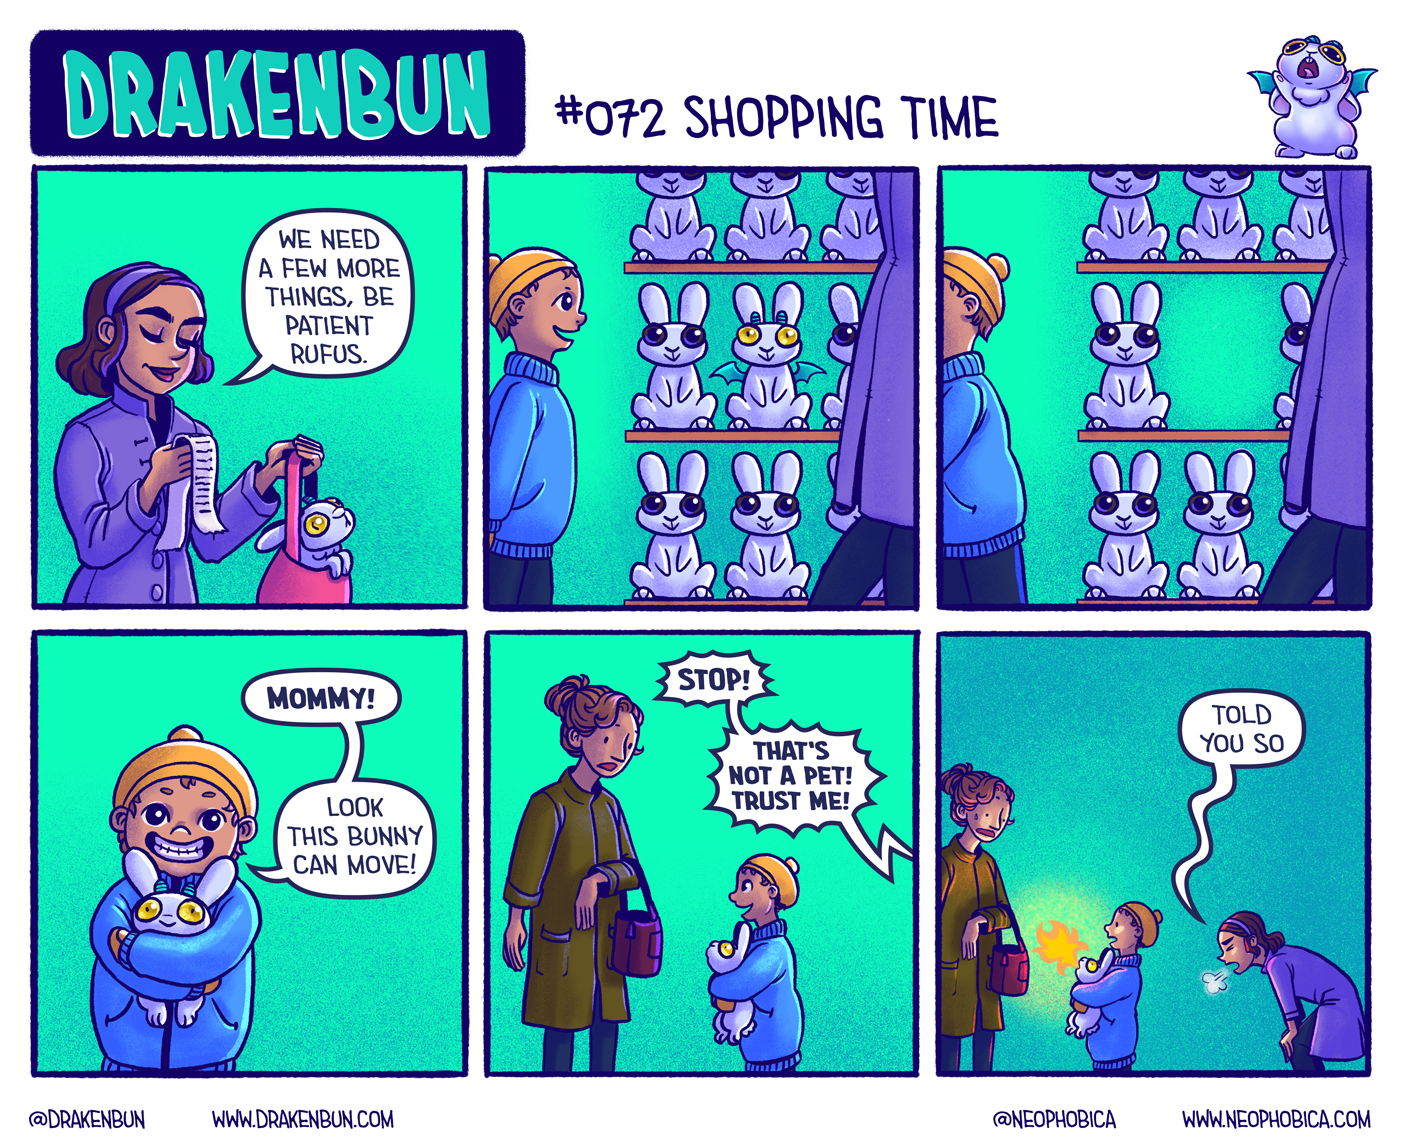 #072 Shopping Time